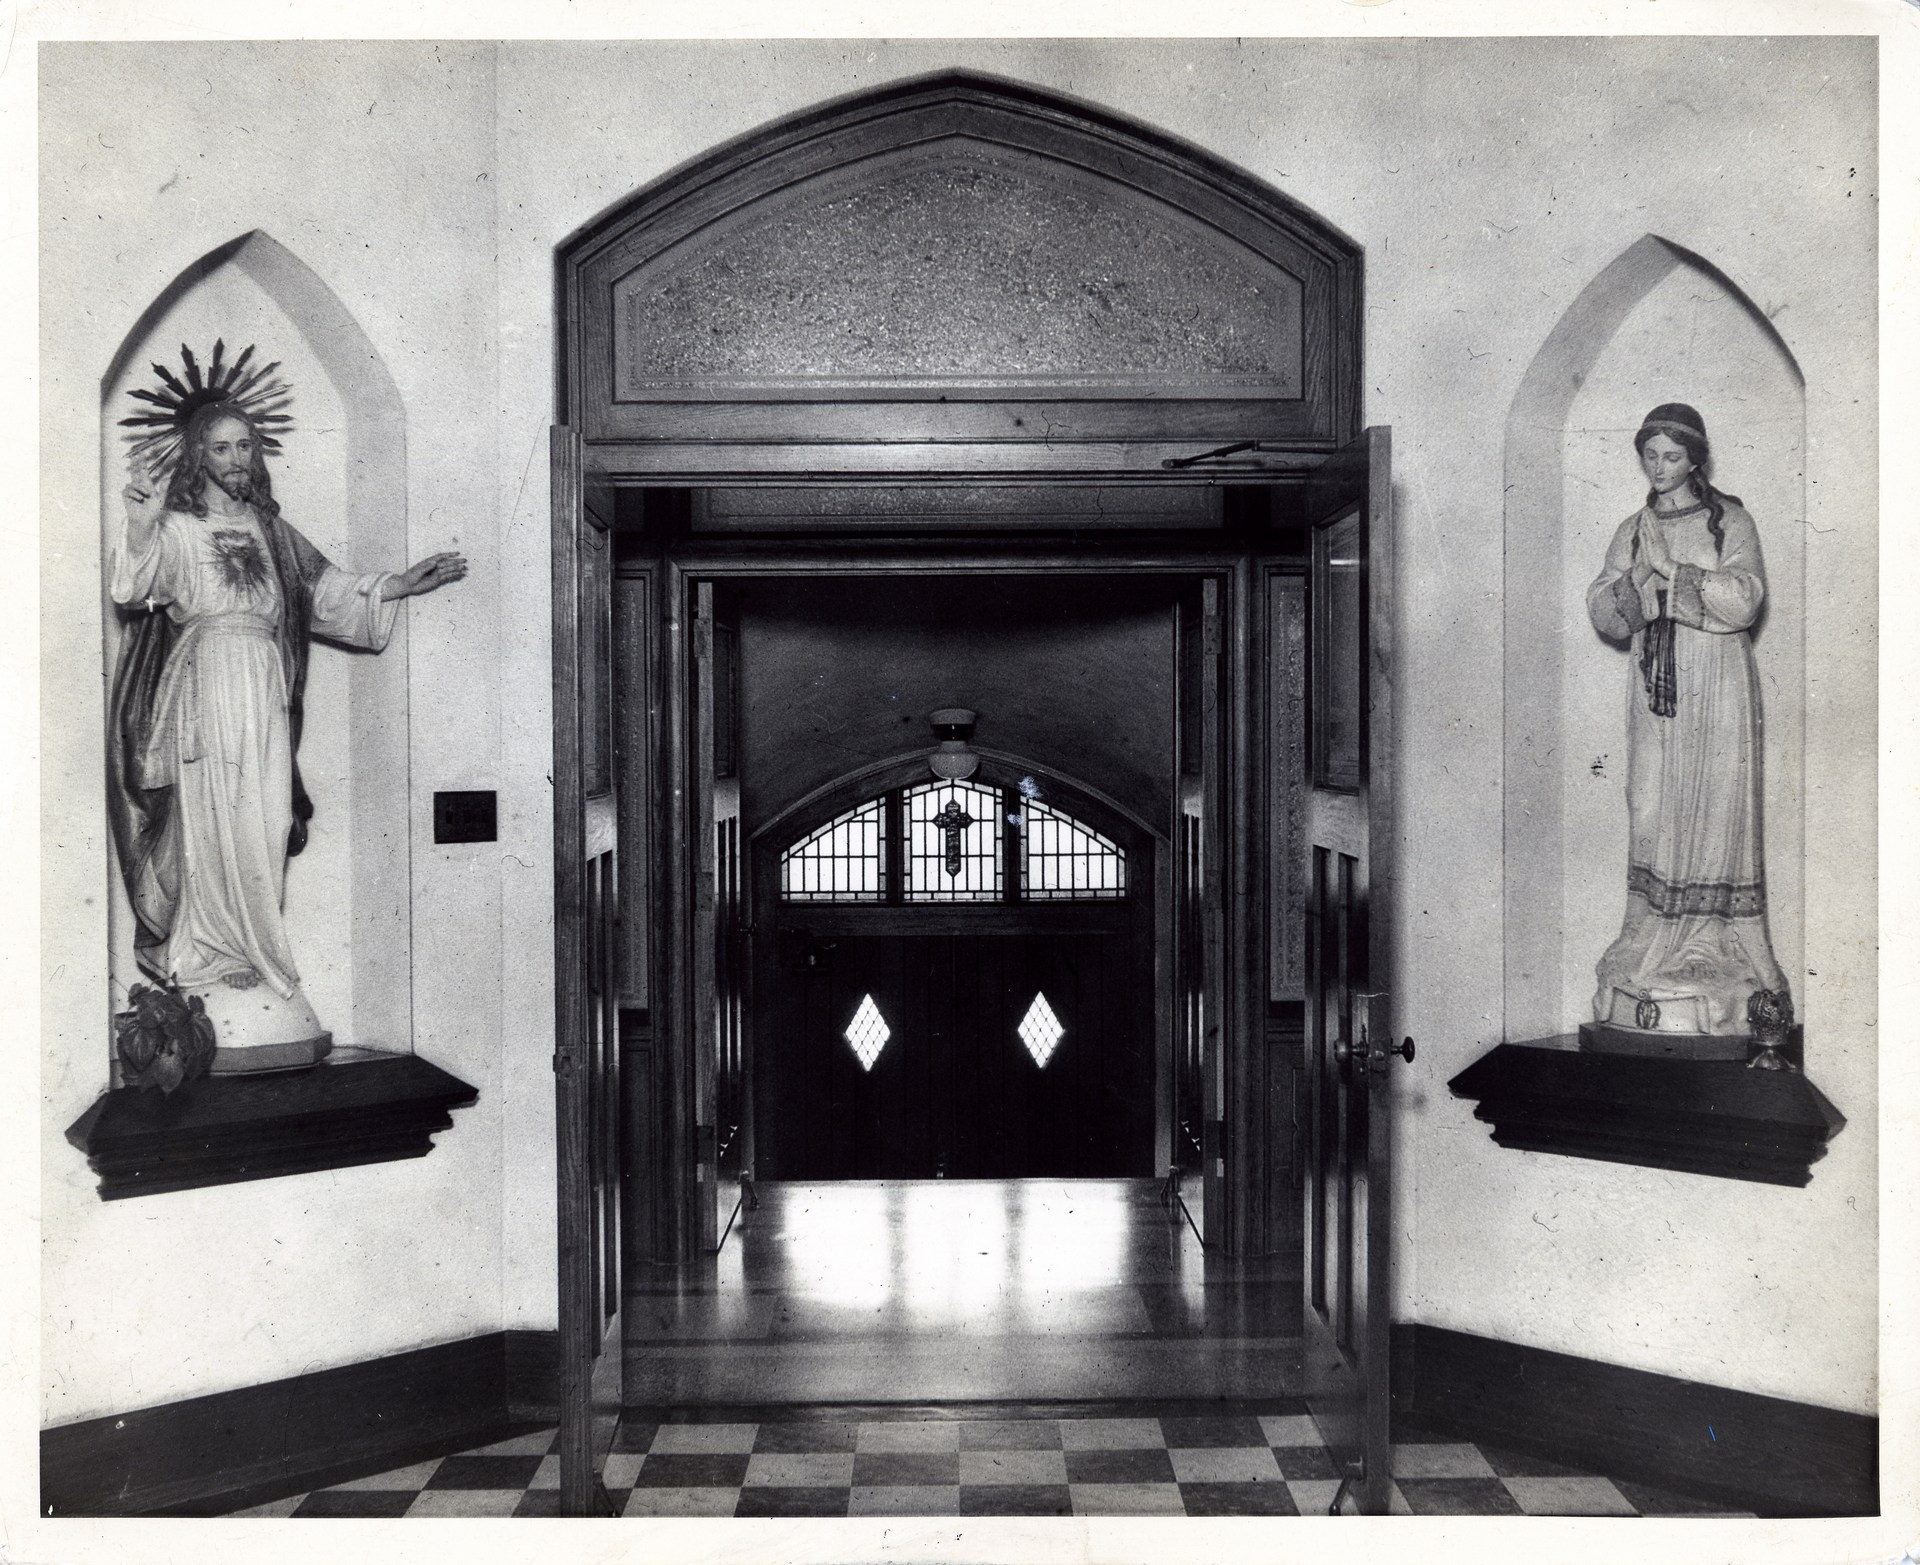 The doorway and statues inside the main entrance of OLSH